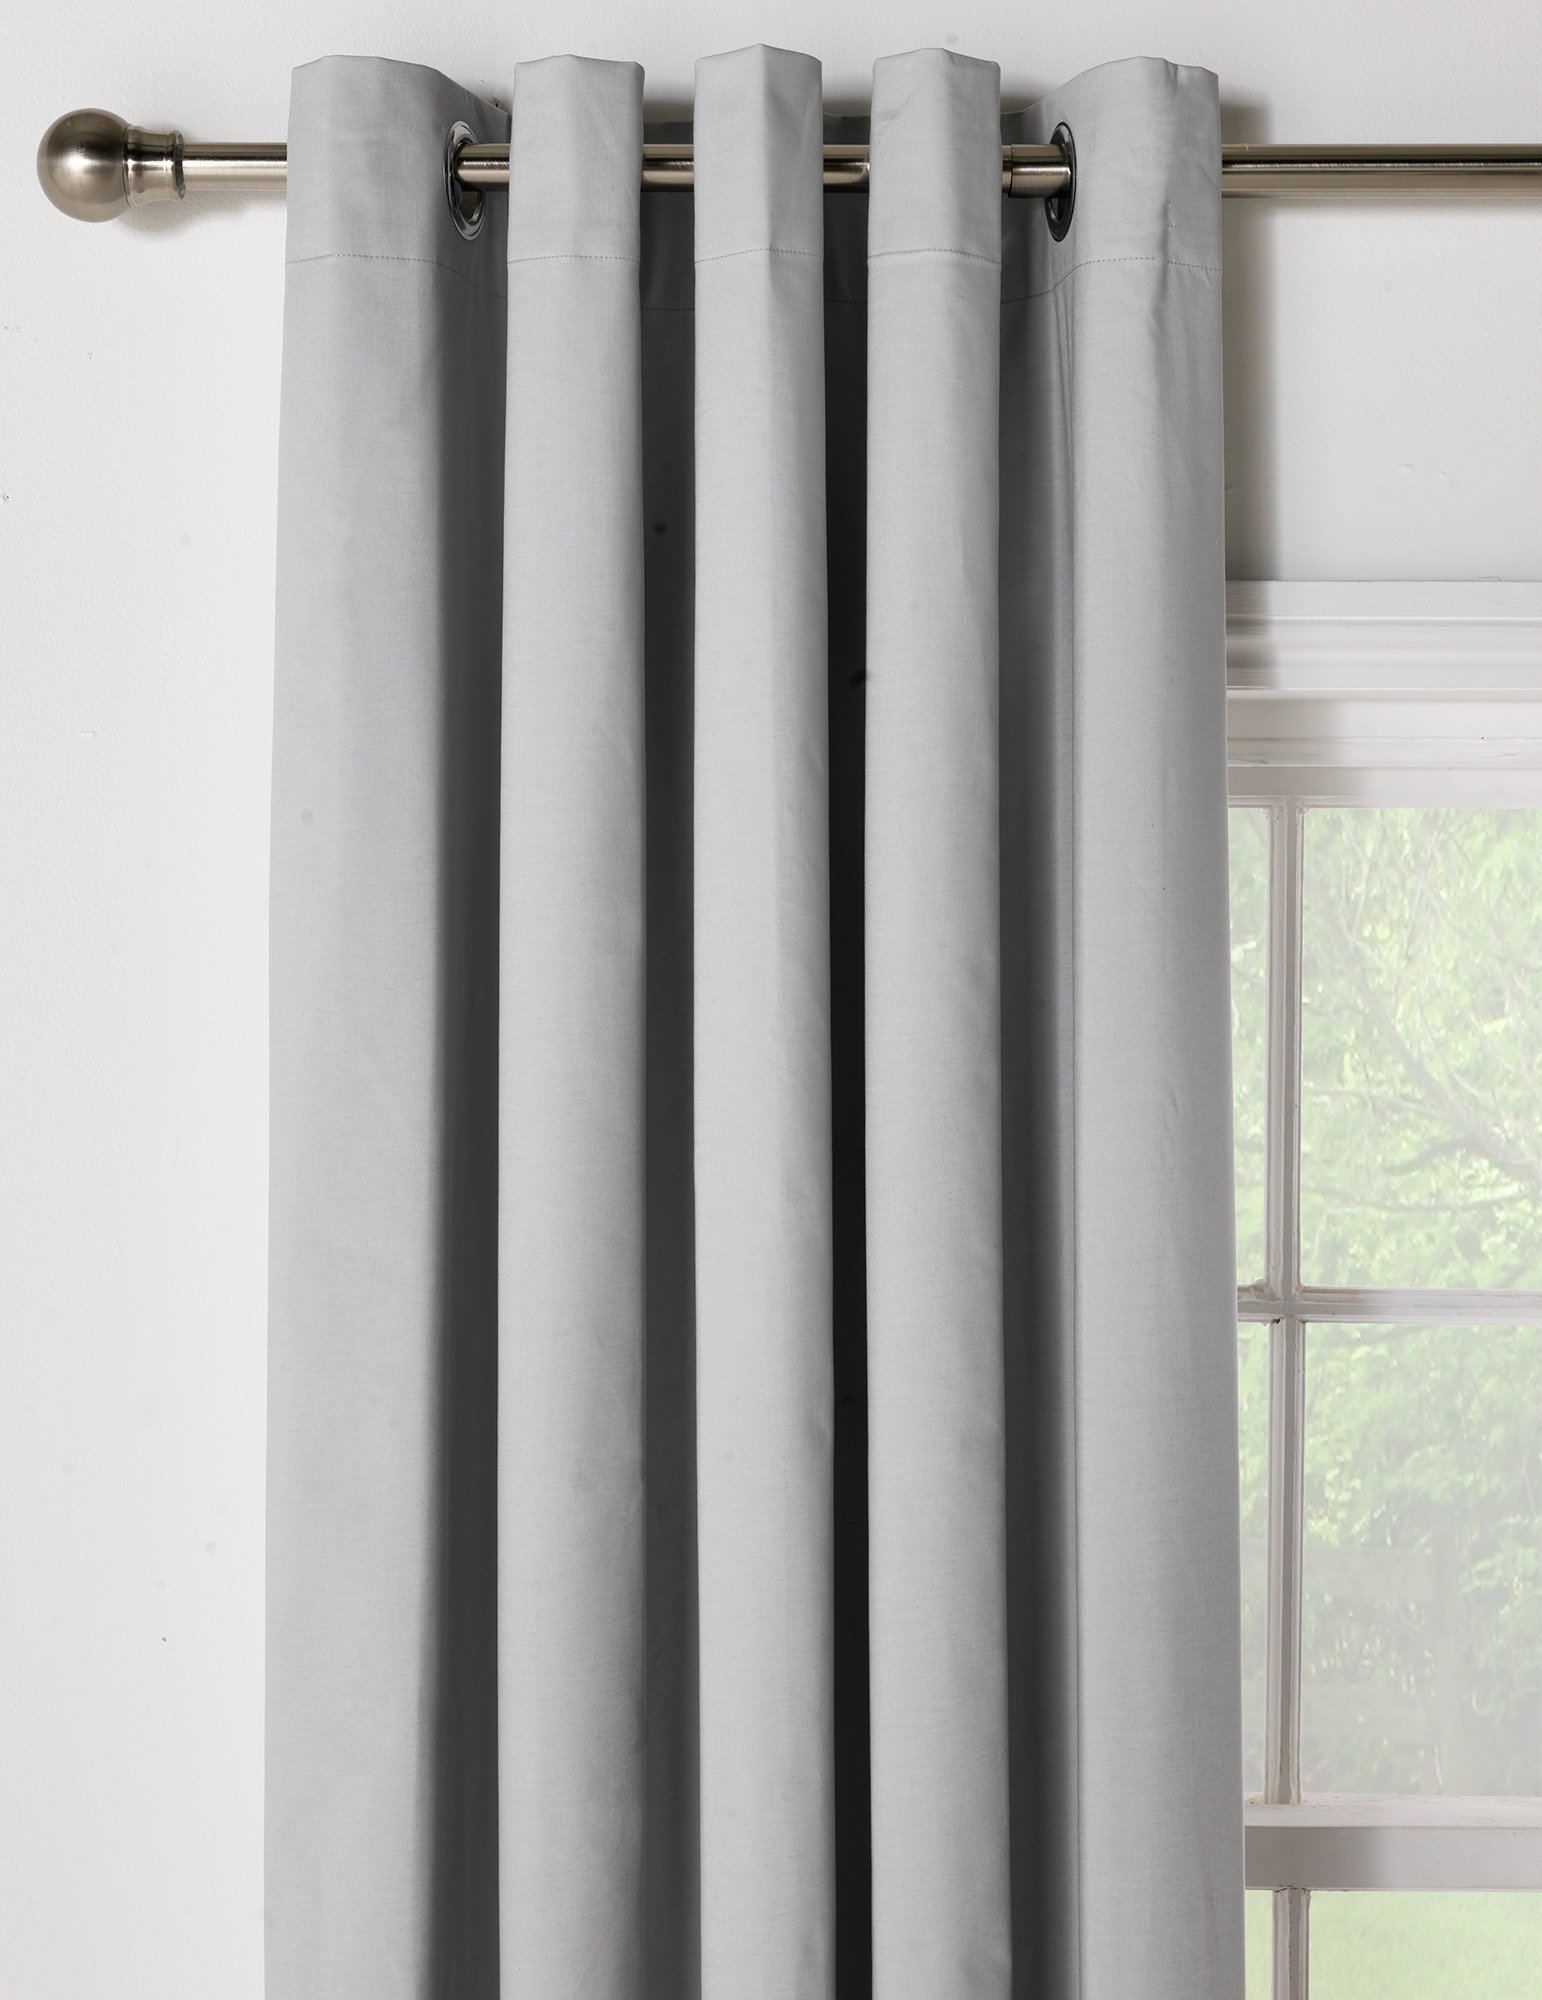 Thermal curtains grey - Home Blackout Thermal Curtains 168x229cm Dove Grey